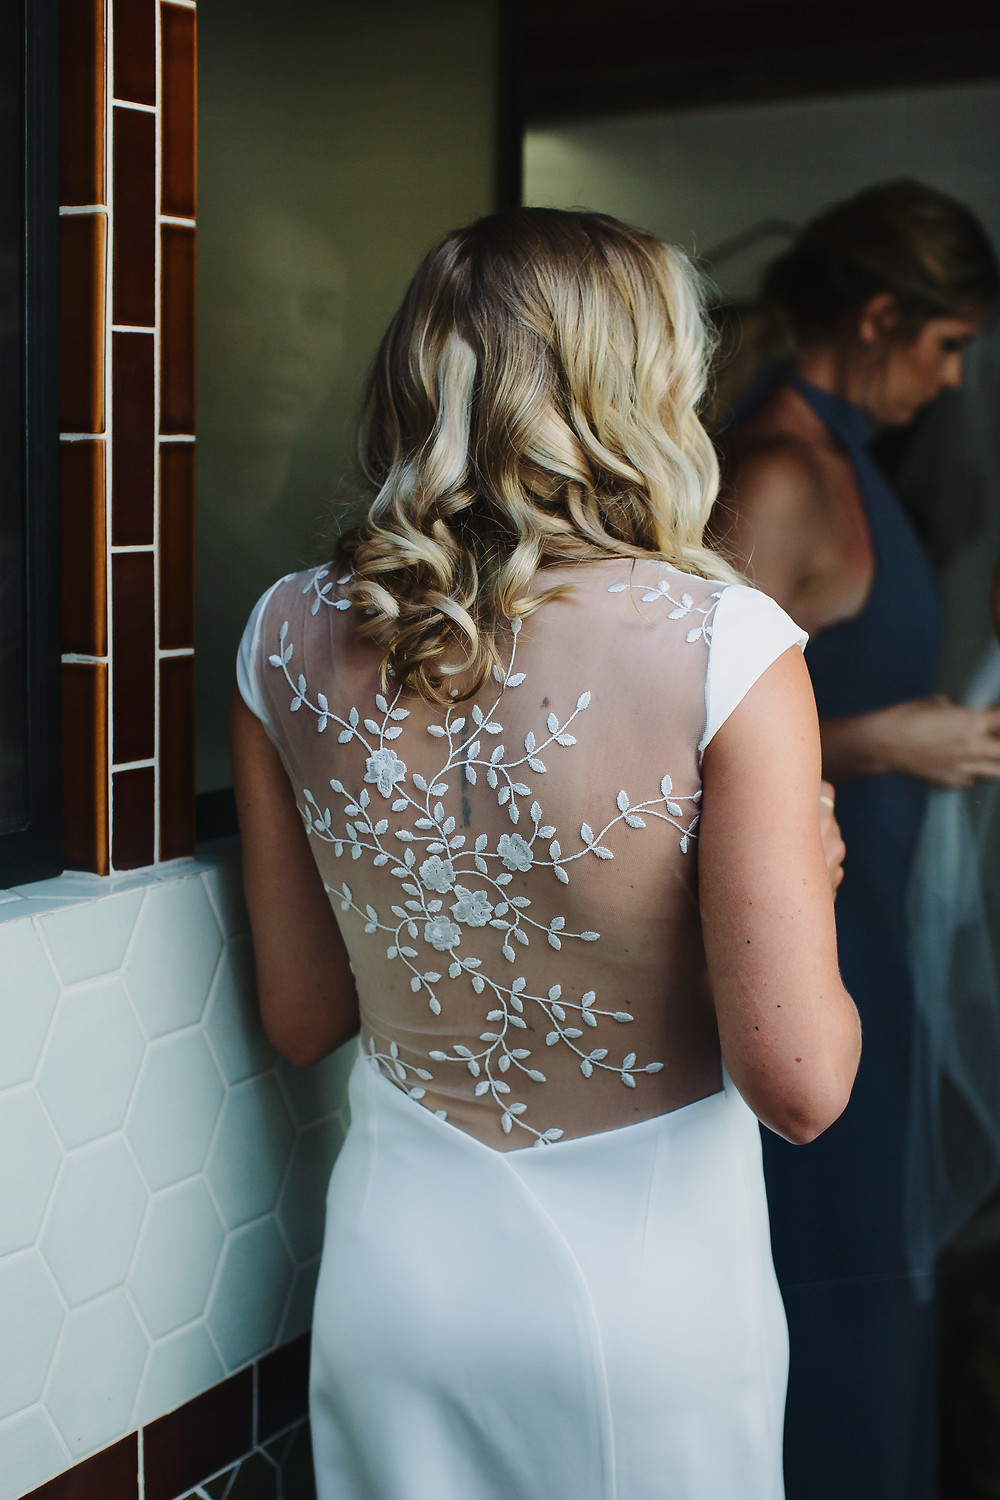 How to Find Your Perfect Dress